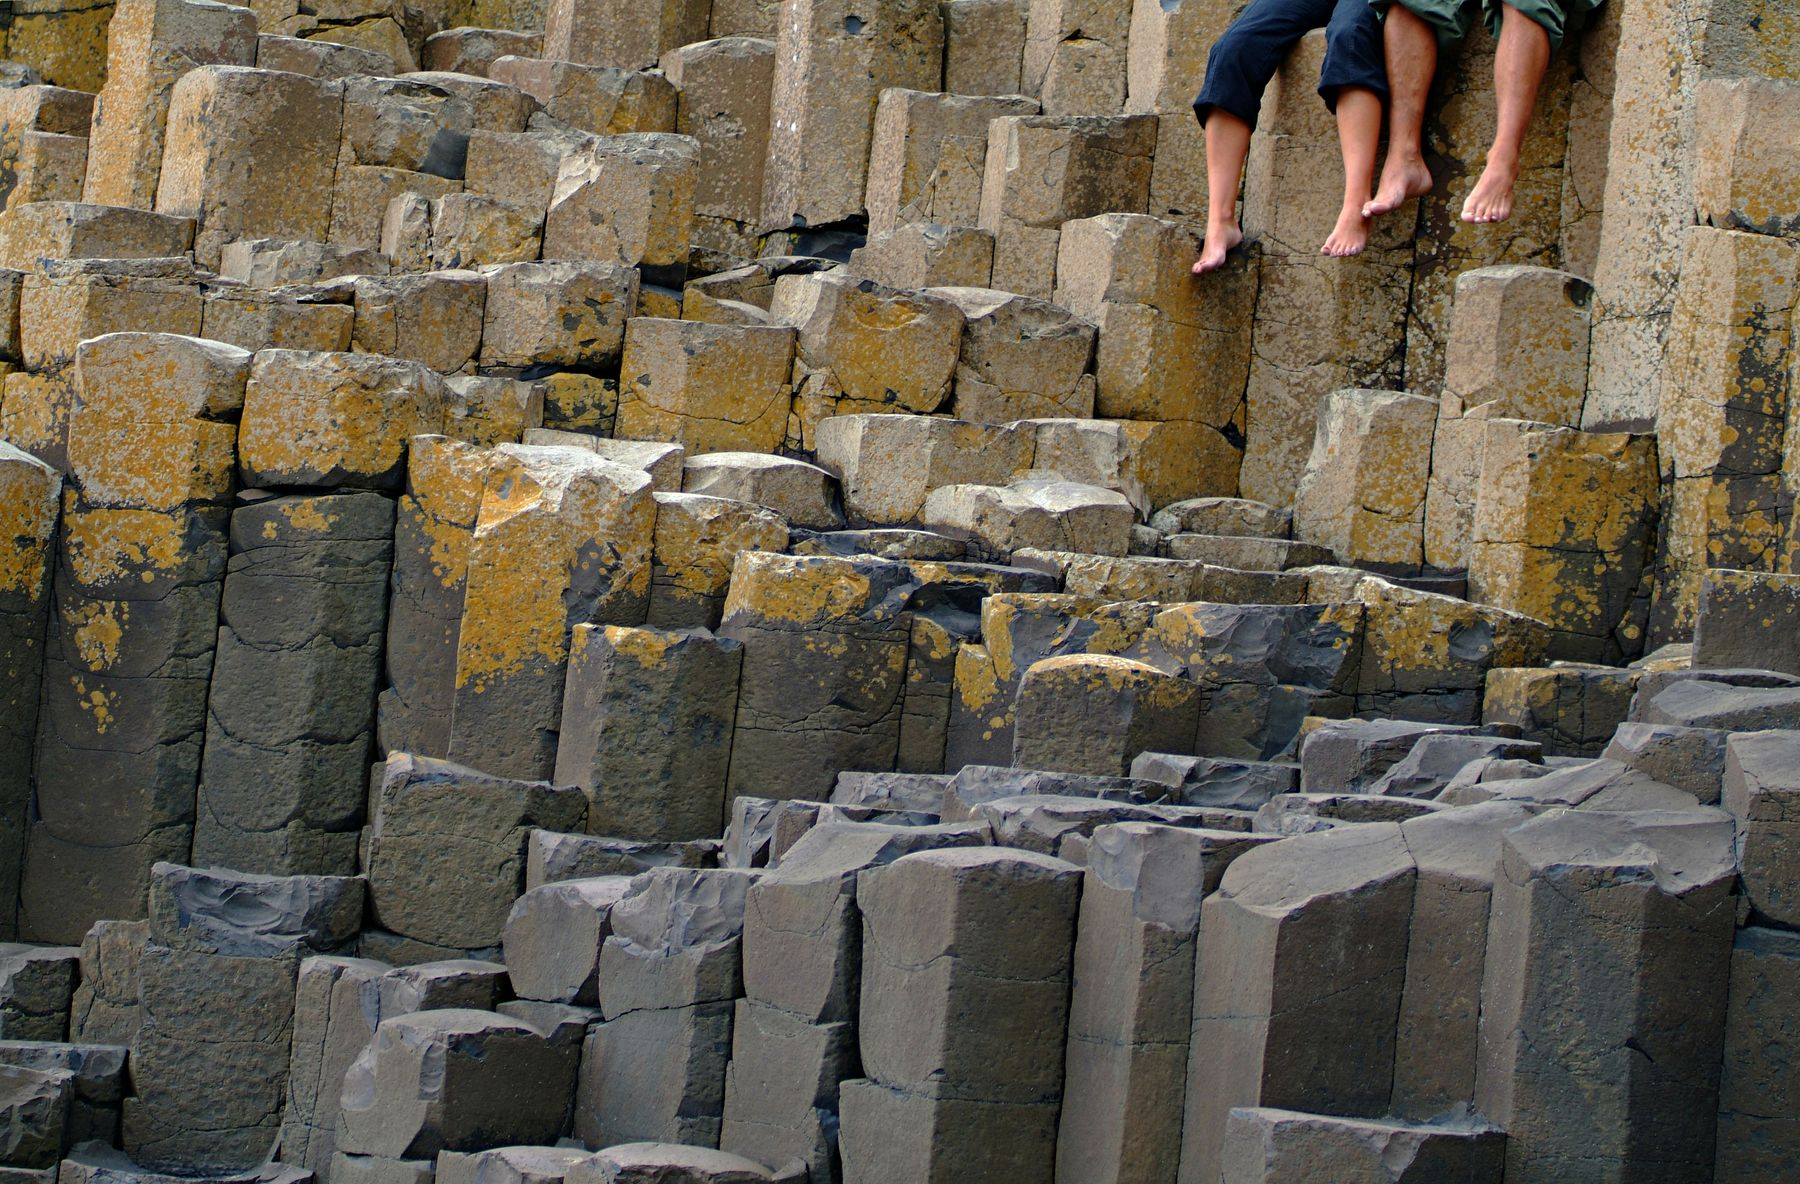 Couple sitting on the Giant's Causeway, Causeway Coast, Northern Ireland